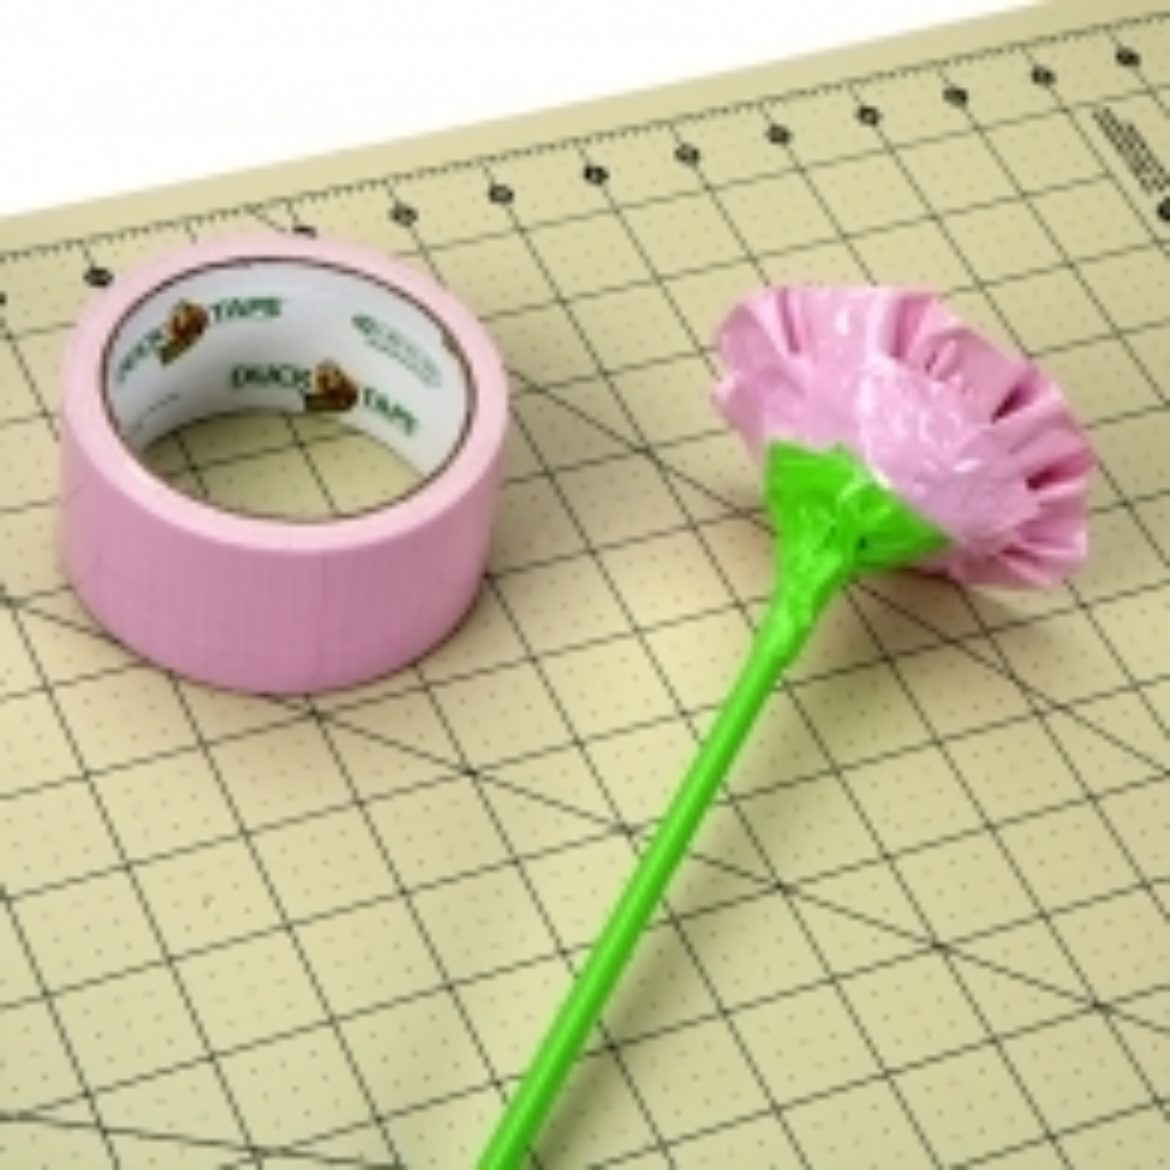 Dowel rod from step 1 taped to the bottom of the flower/egg to complete